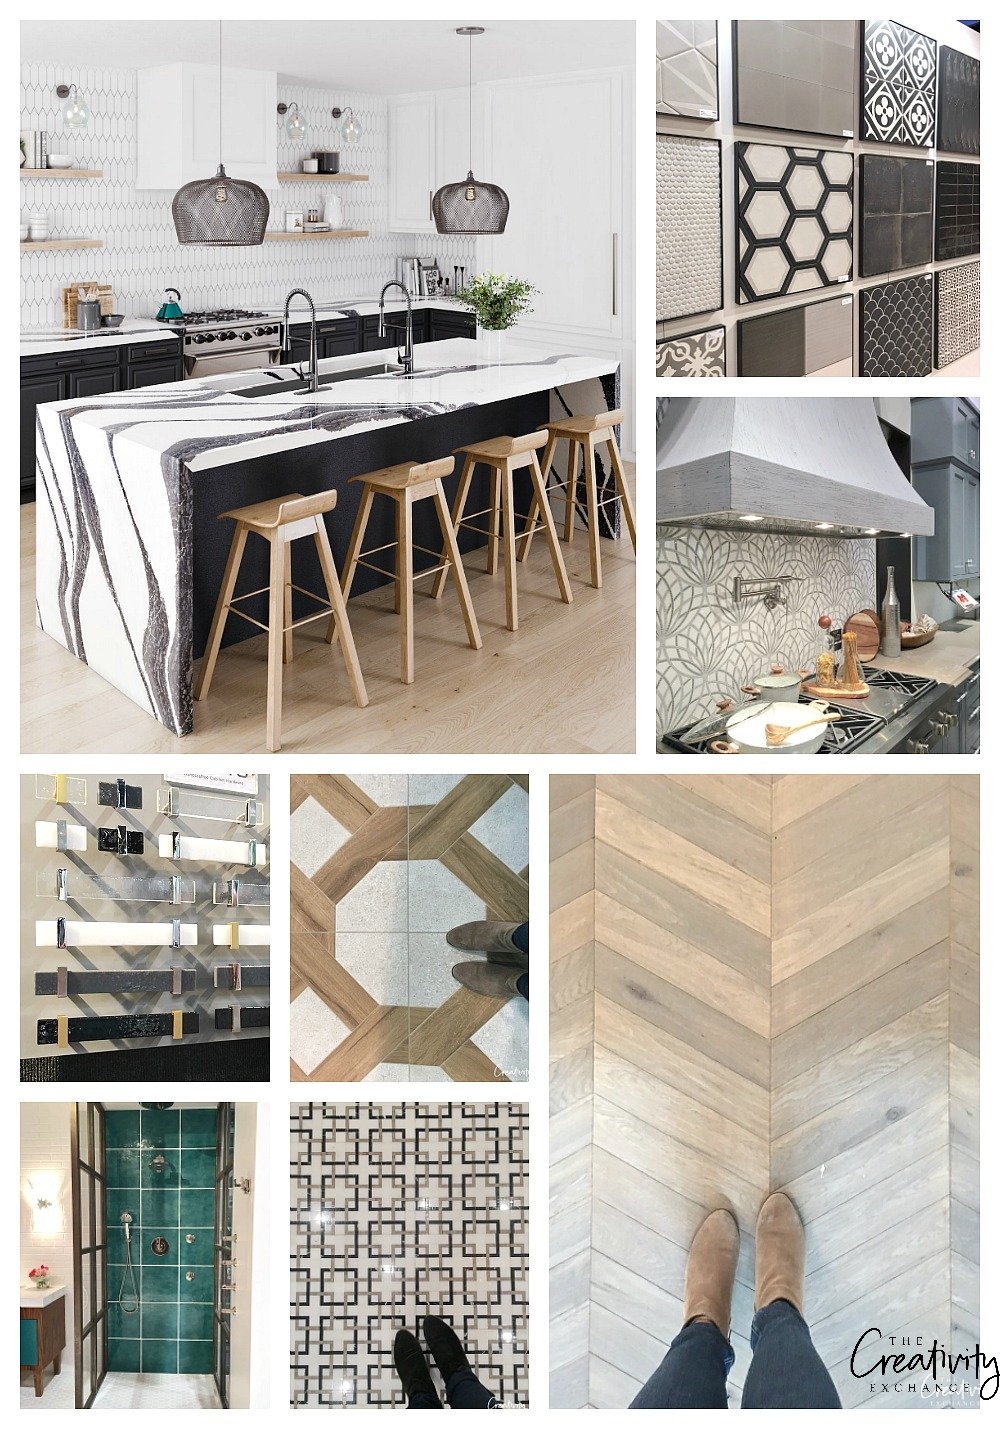 - 2019 Kitchen And Bath Industry Show In Las Vegas